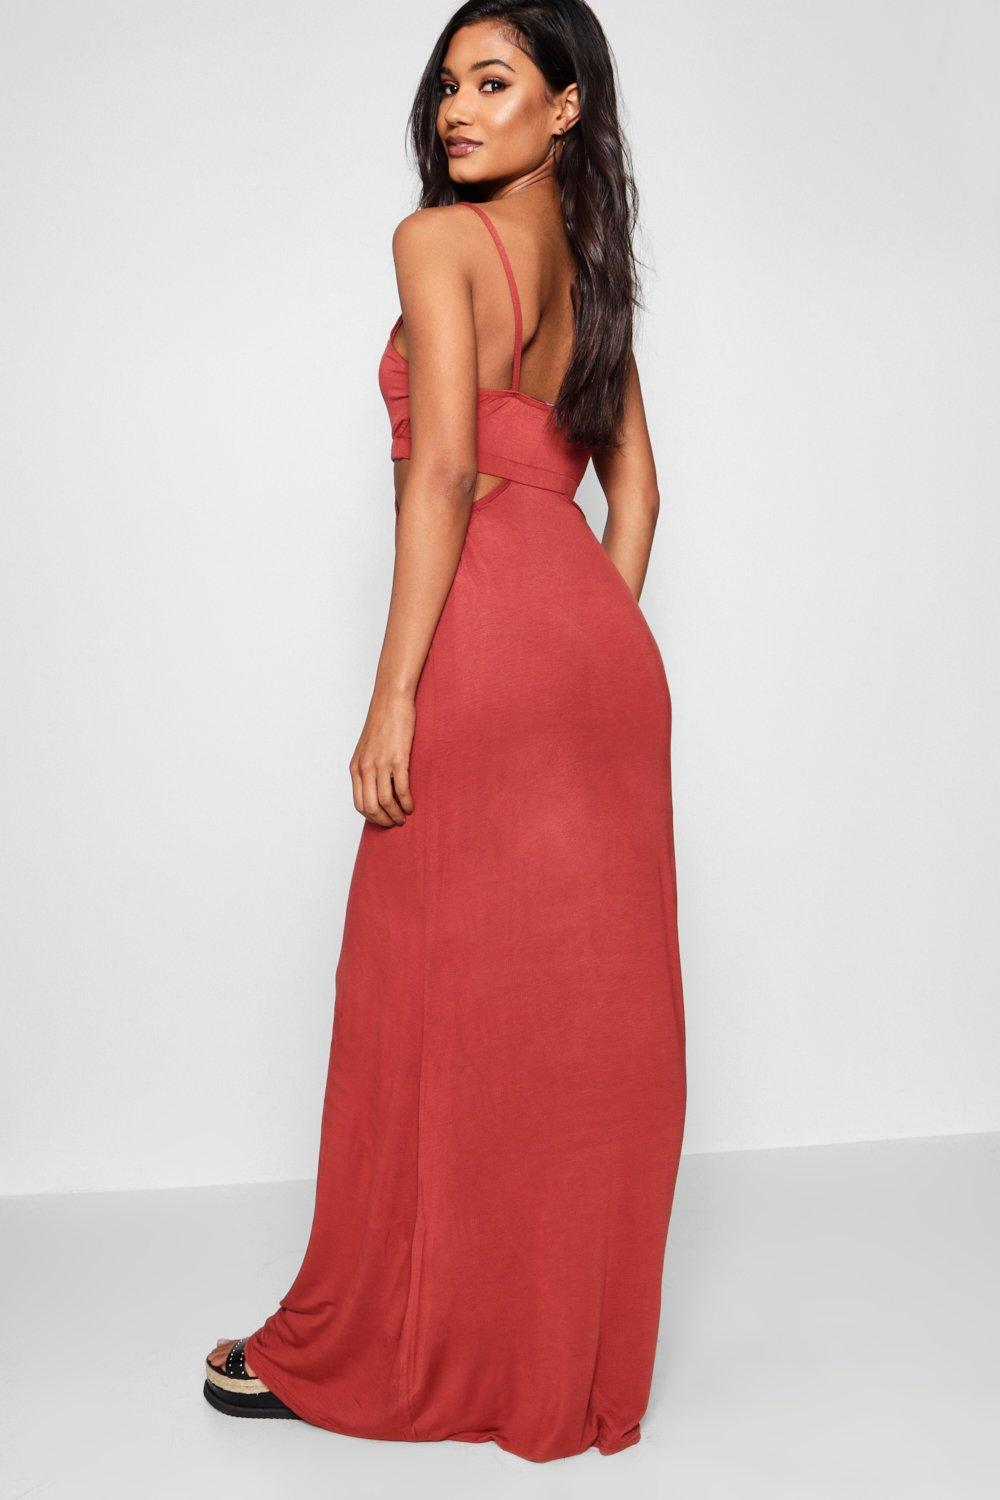 Strappy Cut Out Maxi Dress